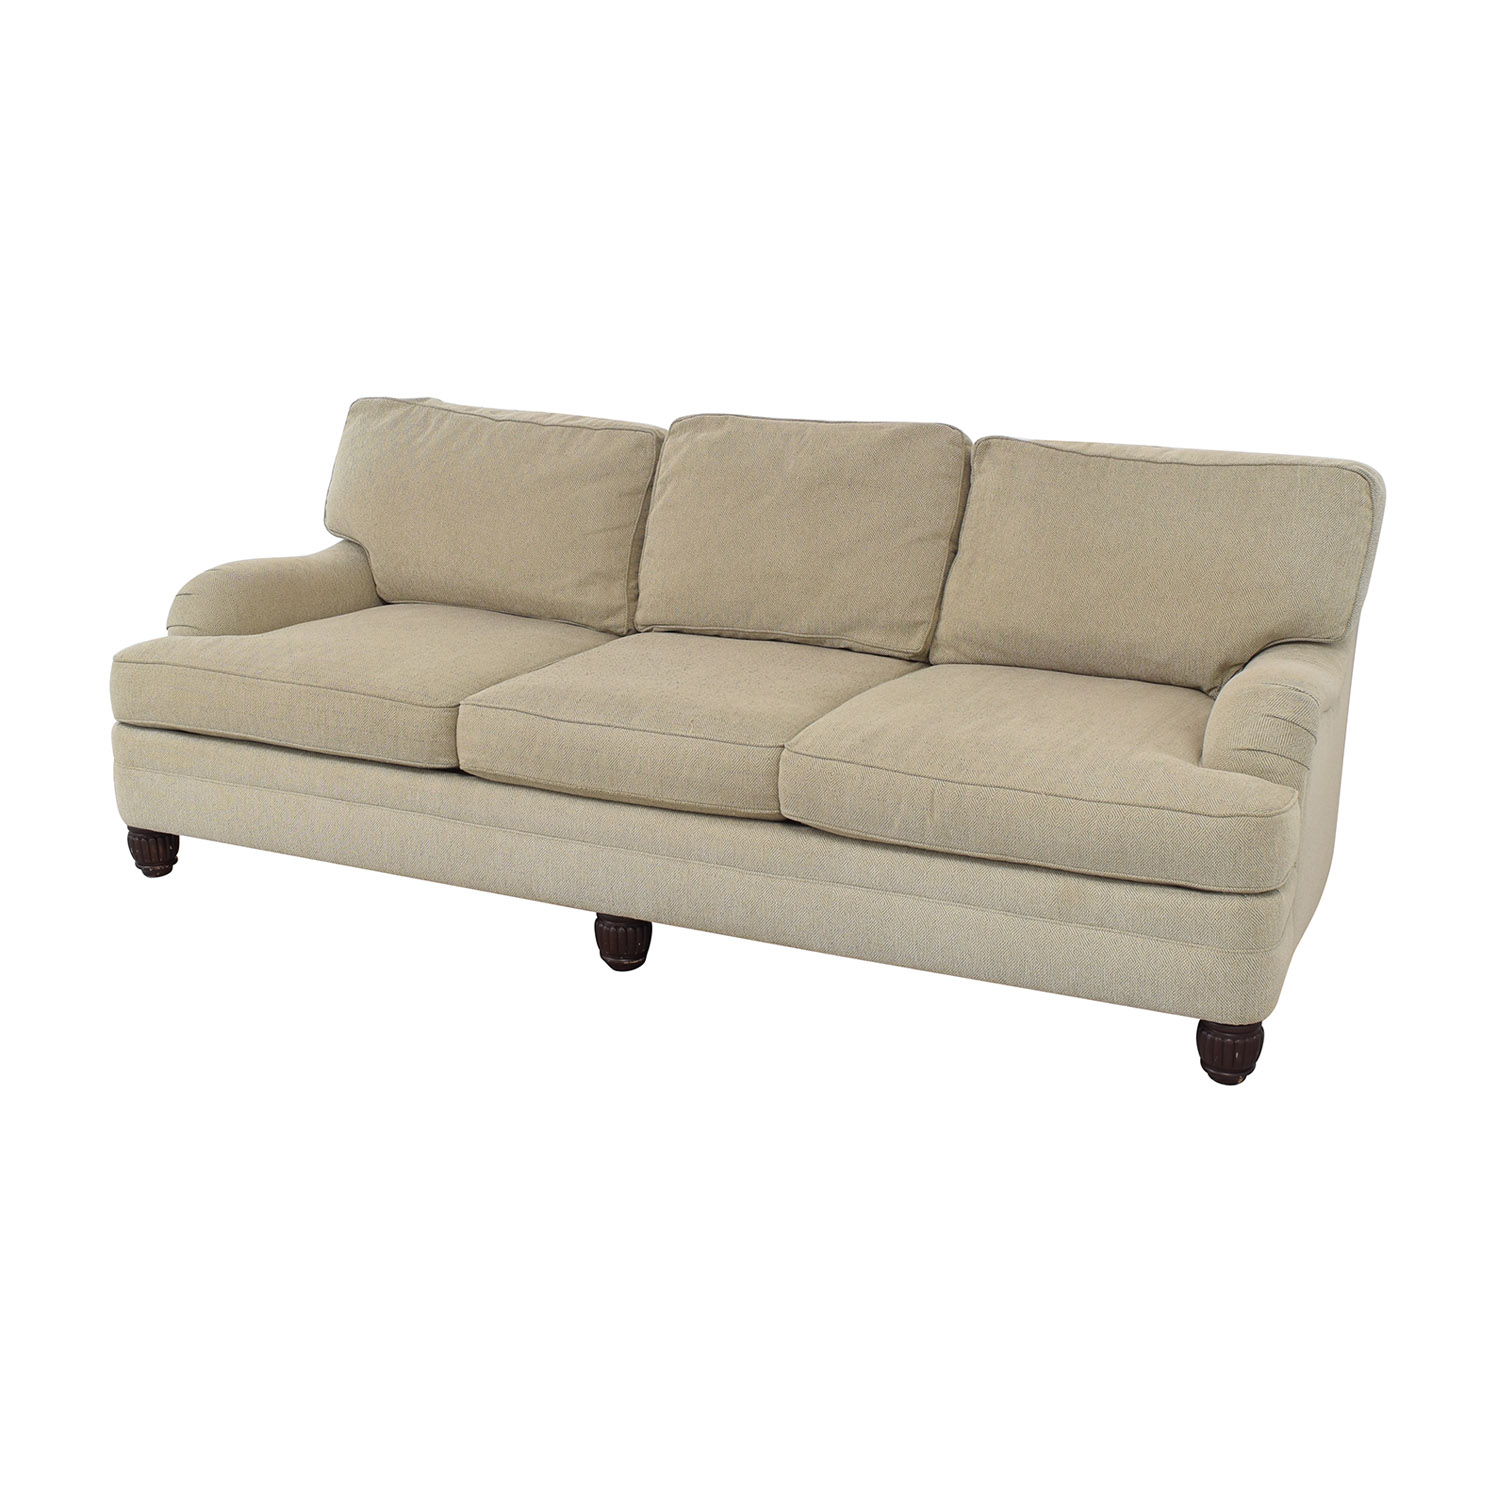 Bernhardt Bernhardt Tarleton Sofa on sale